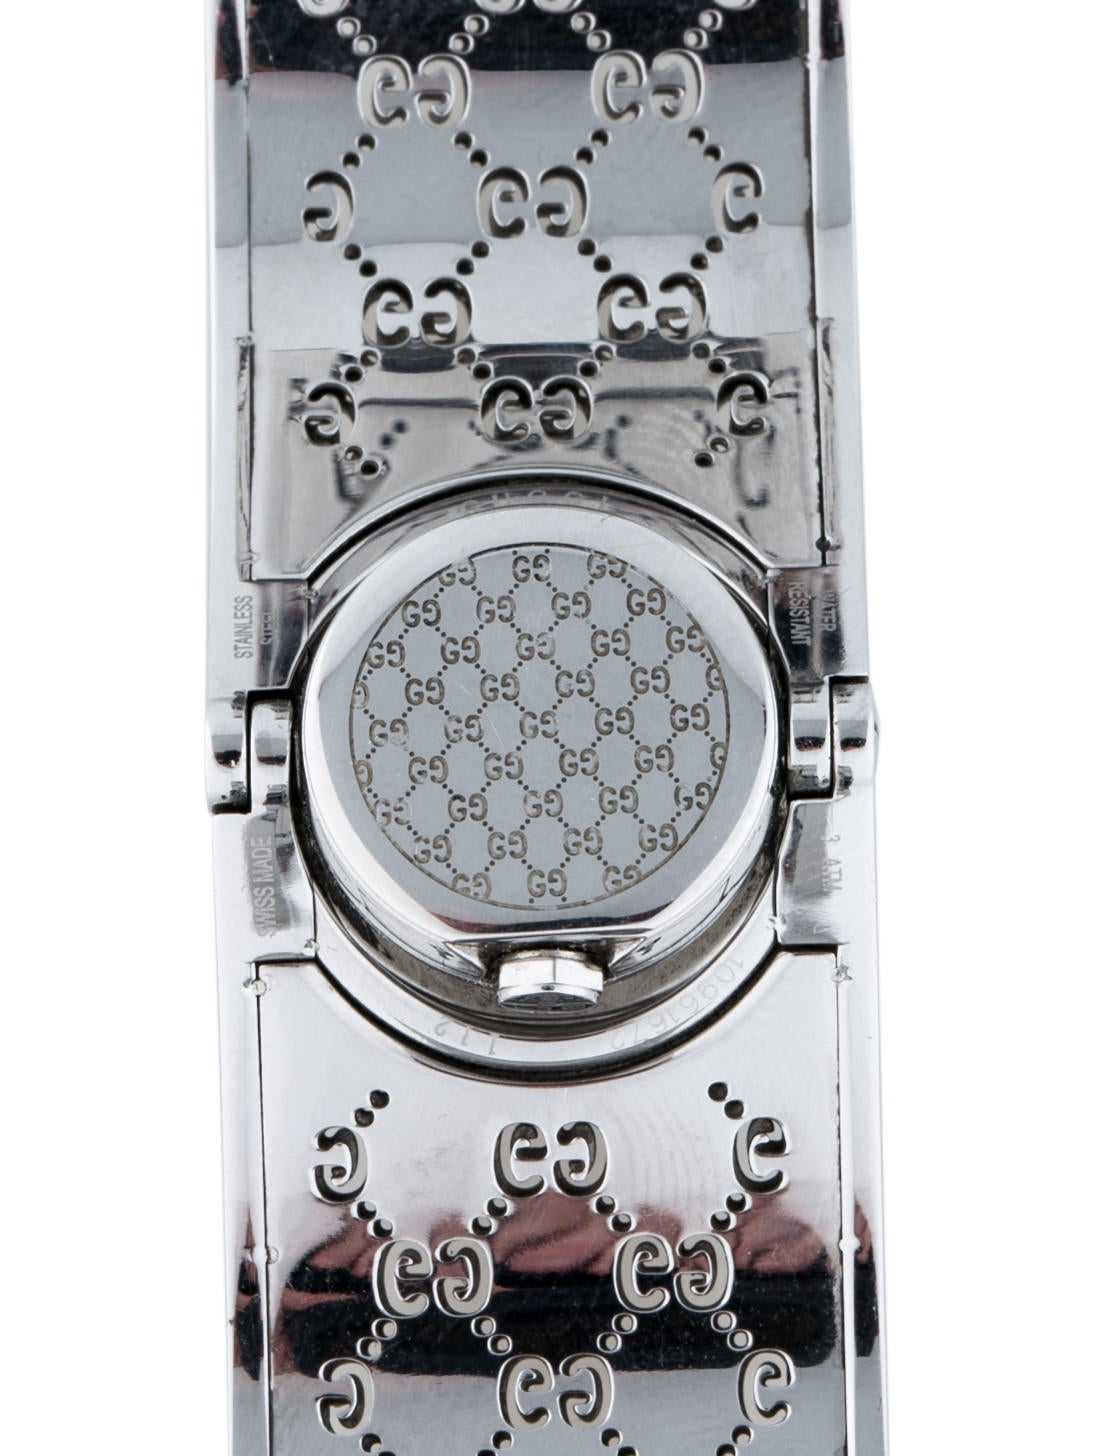 d8f4c7c63d0 Gucci twirl watch with diamonds - What do the two faces in drama mean